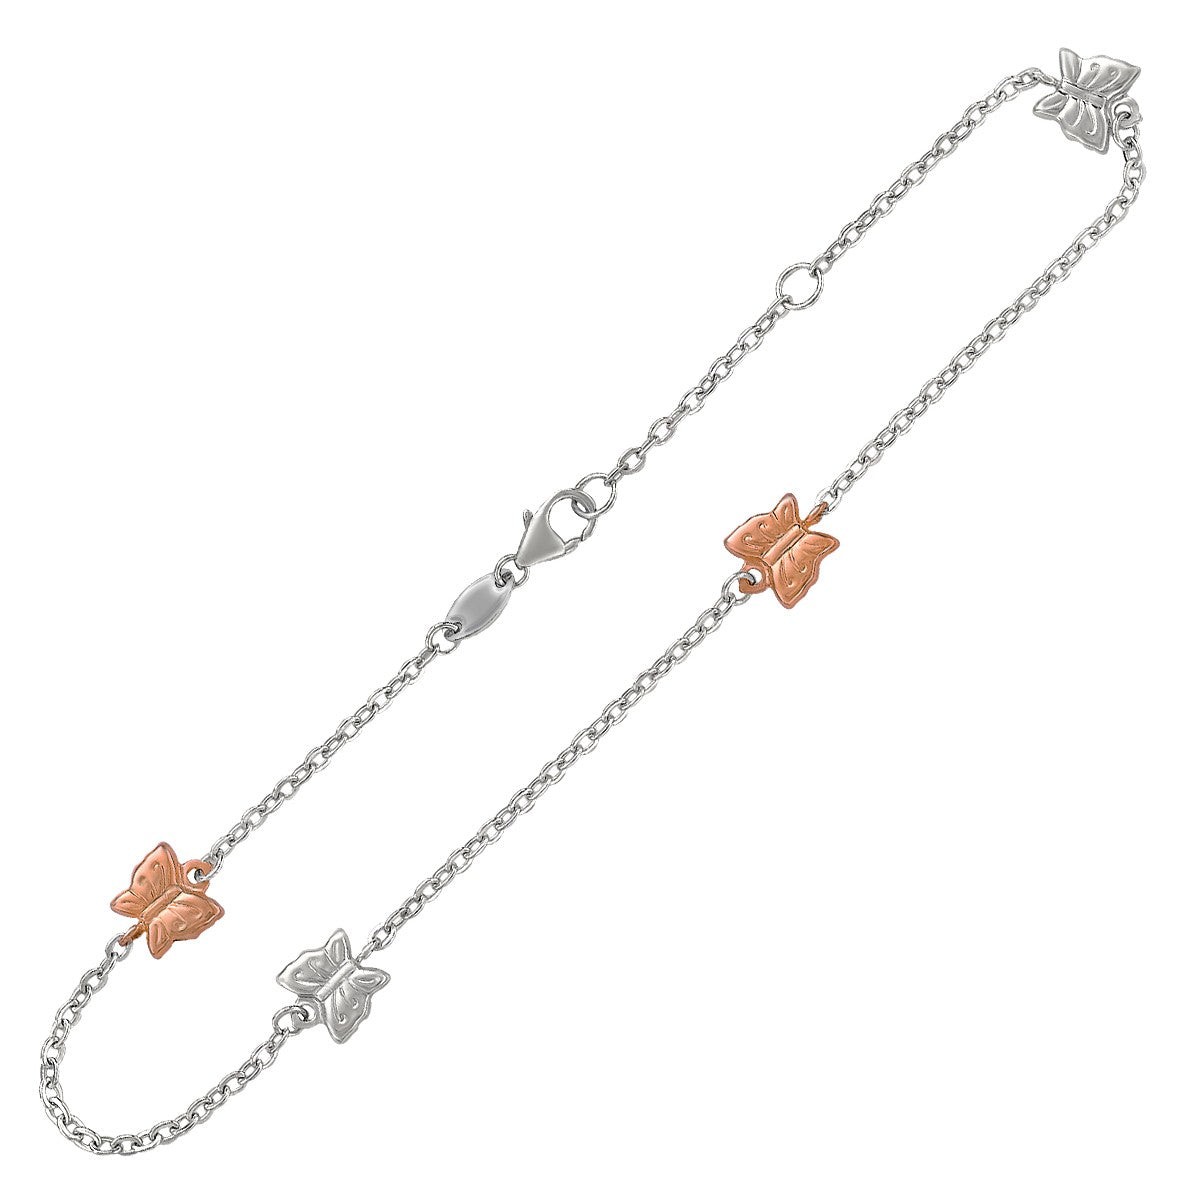 14K Rose Gold and Sterling Silver Anklet with Butterfly Stations - Uniquepedia.com